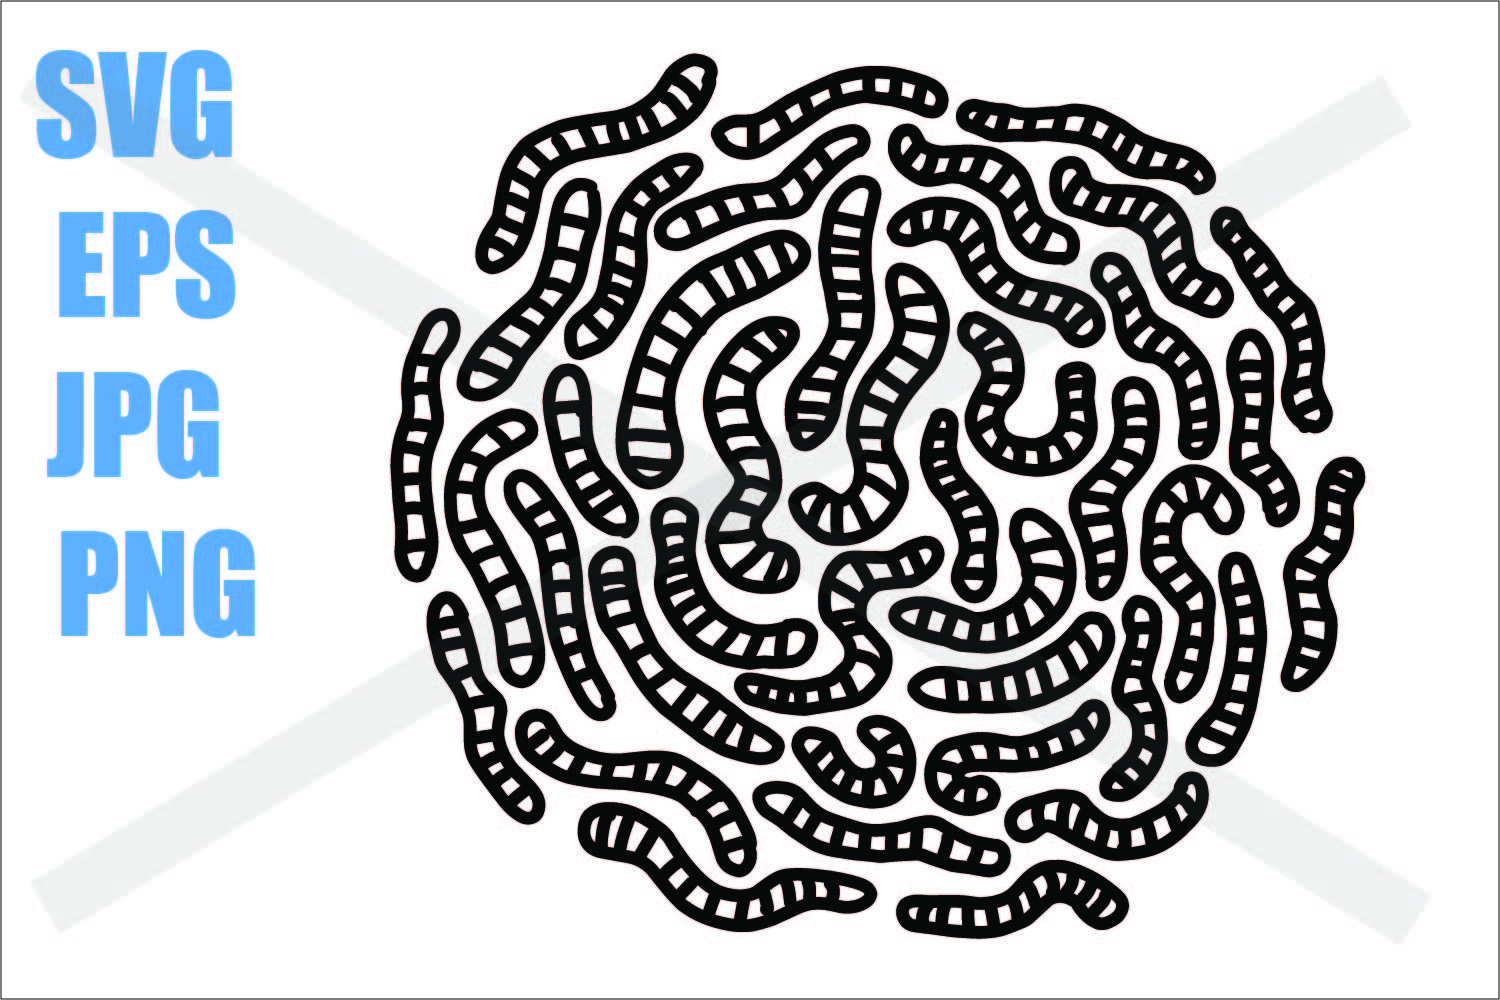 Worms - SVG EPS JPG PNG example image 1